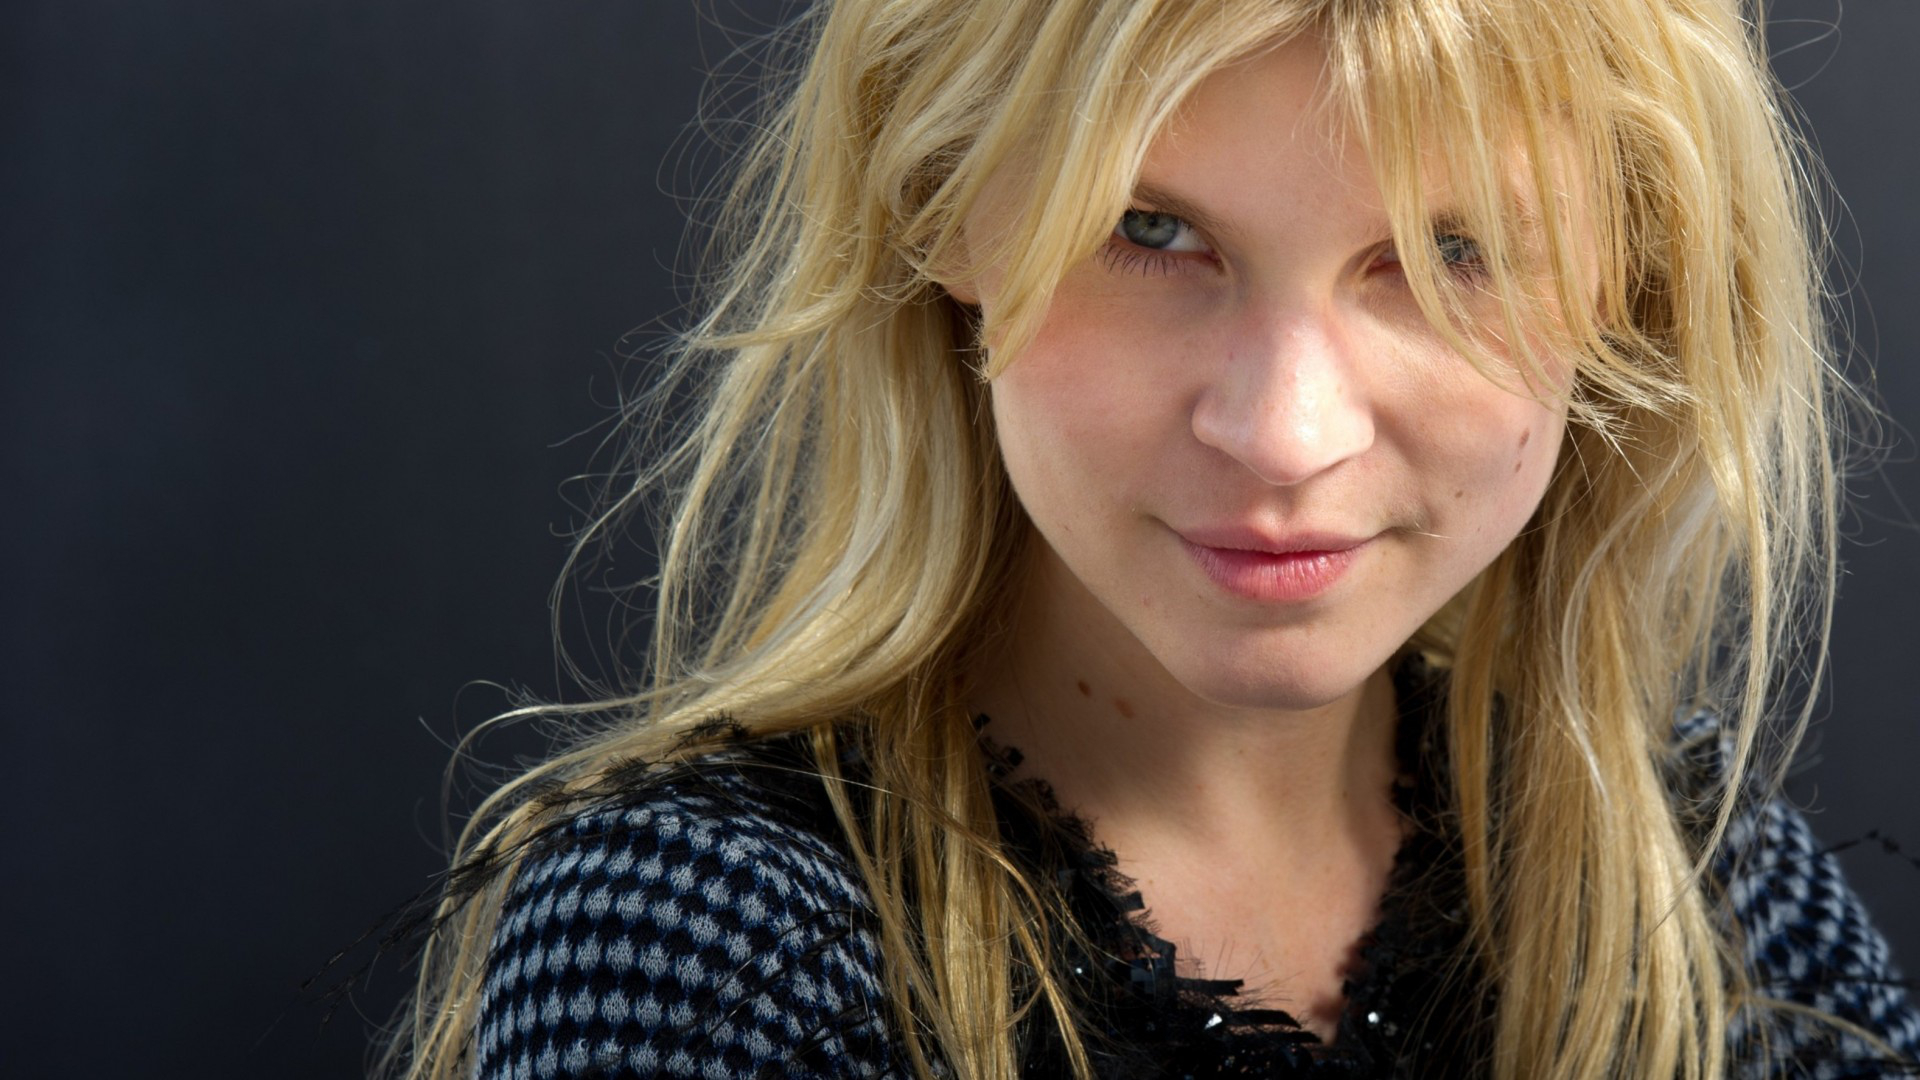 1920x1080 - Clemence Poesy Wallpapers 2